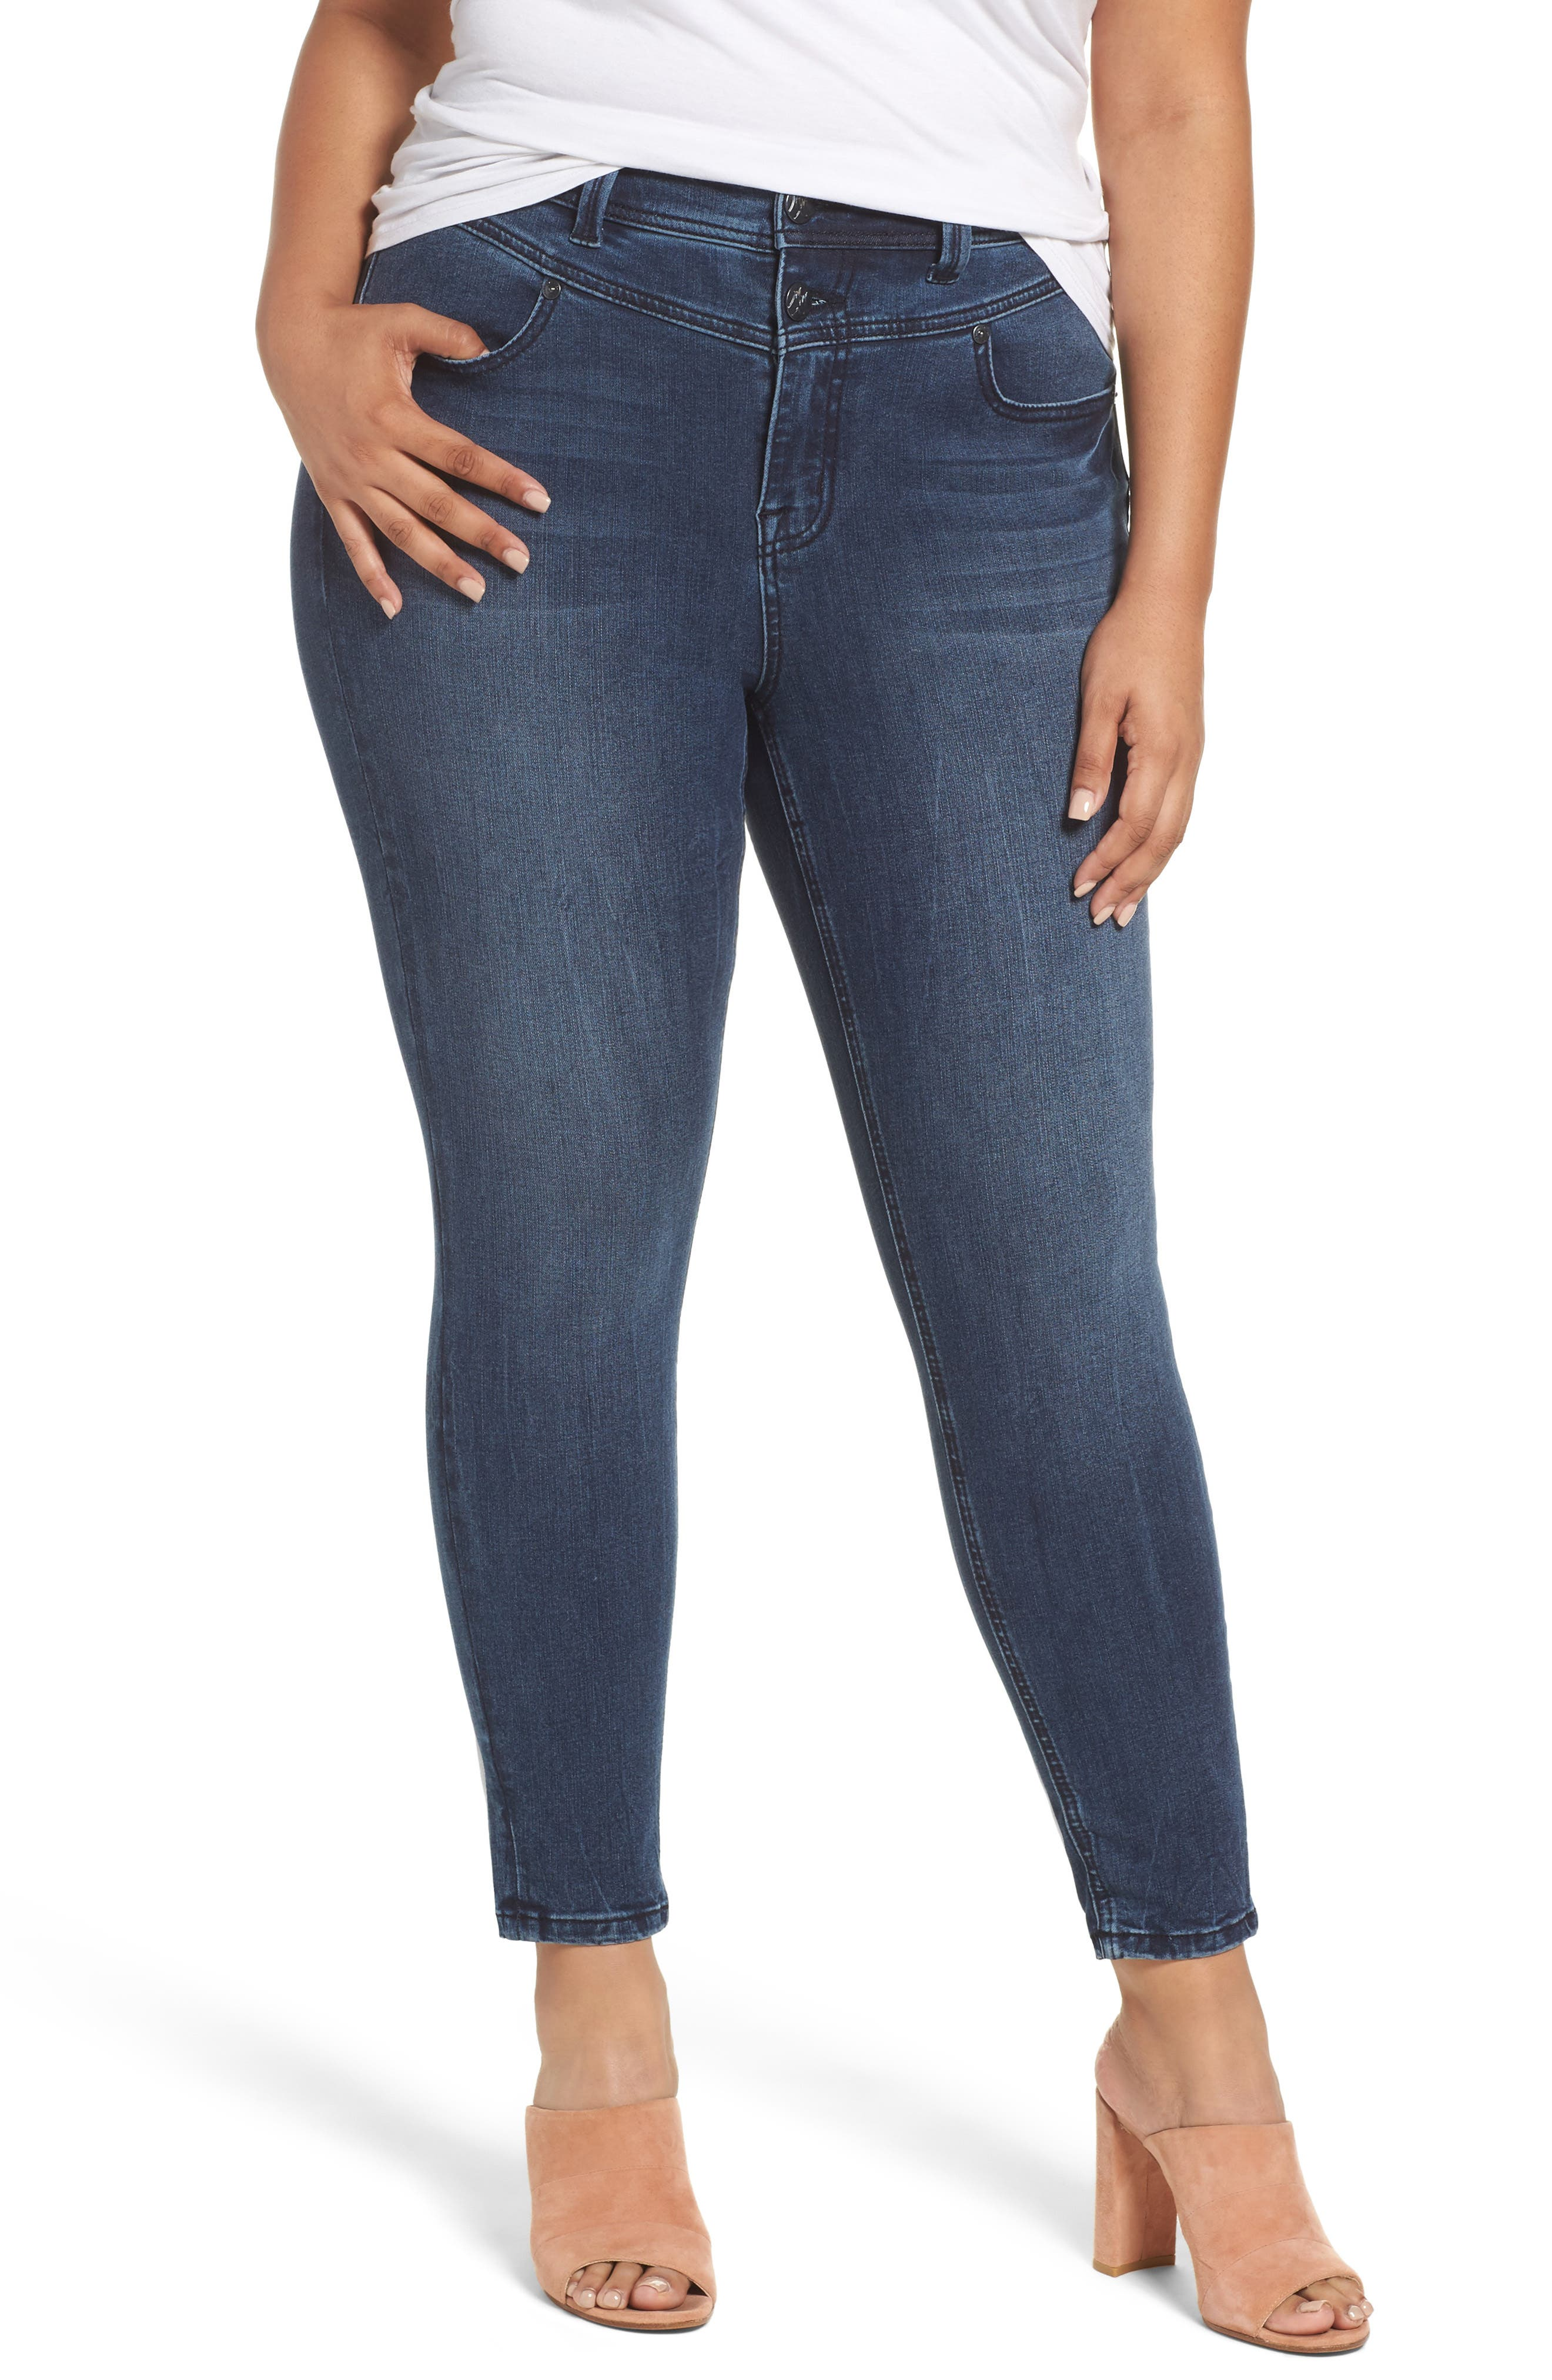 Melissa McCarthy High Rise Front Yoke Pencil Jeans (Plus Size)